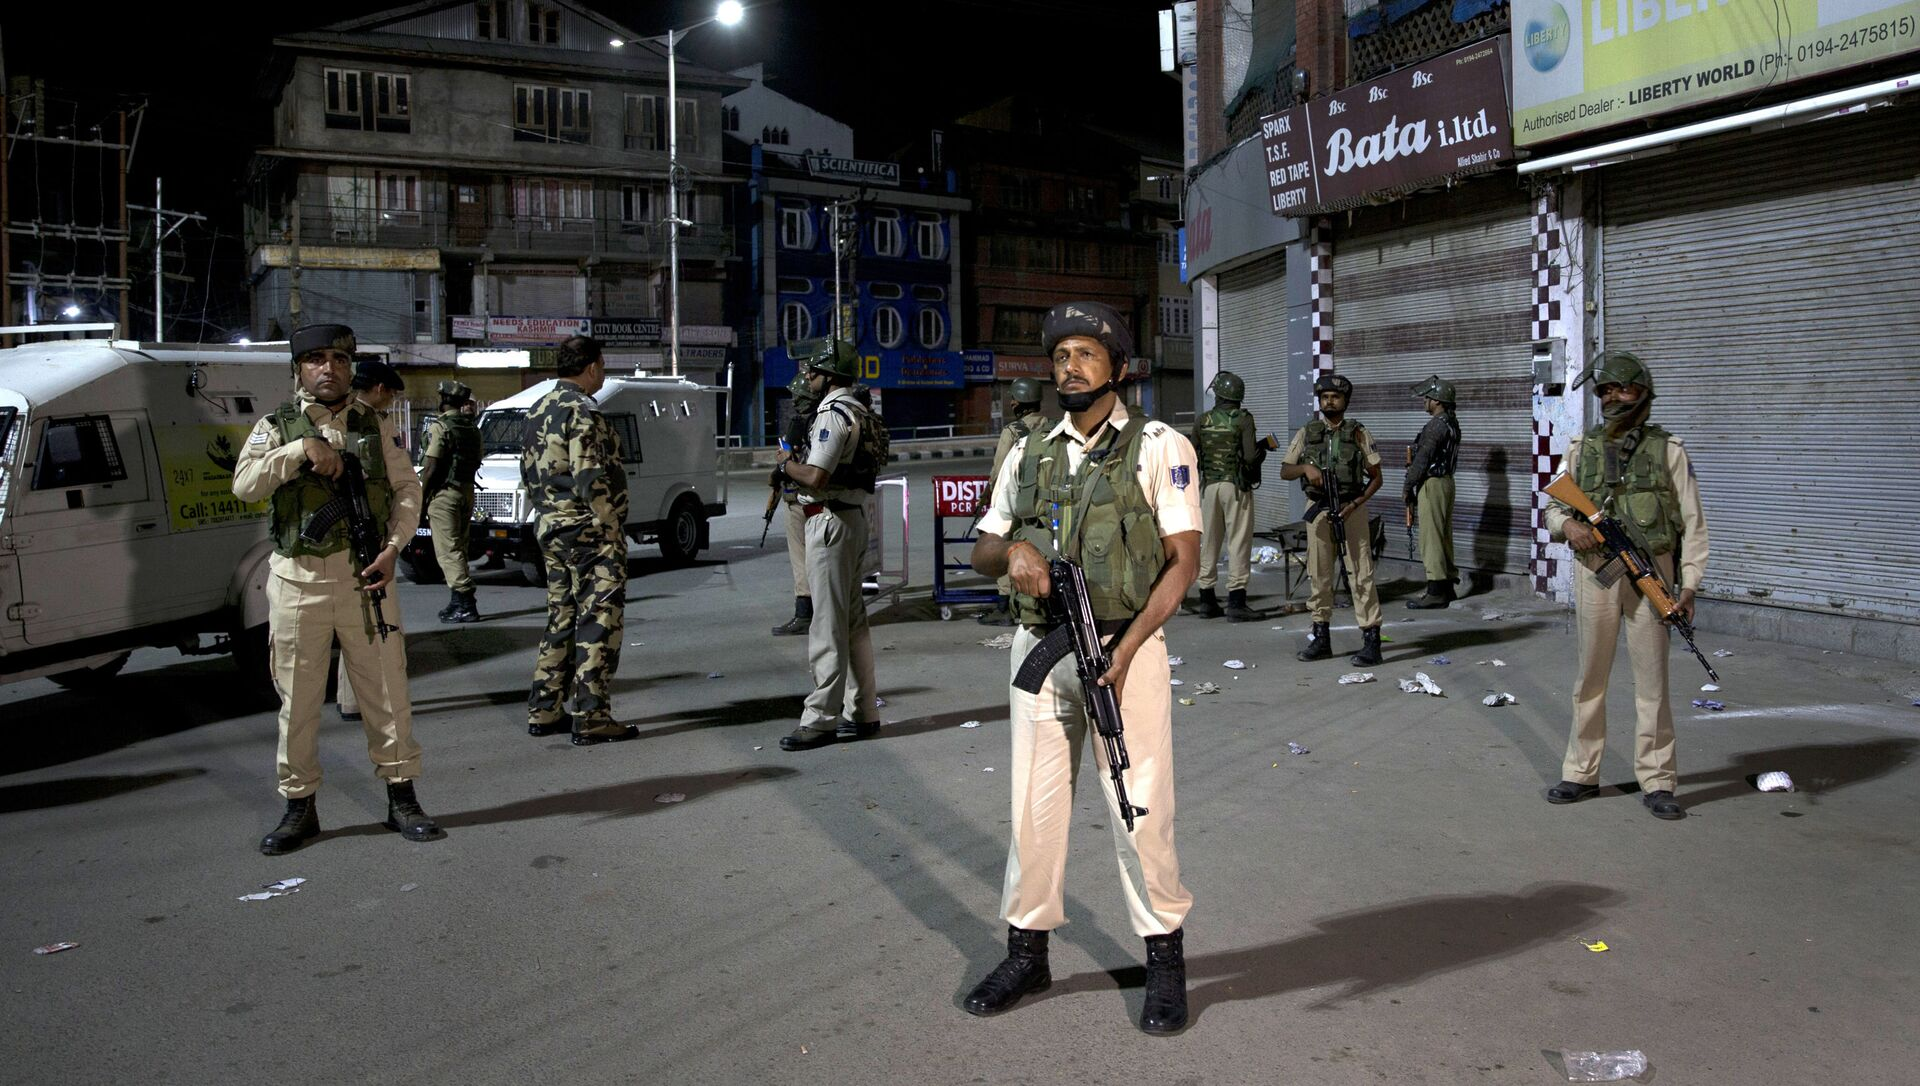 Indian soldiers stand guard in Srinagar, India, Sunday, Aug. 4, 2019. Tensions have soared along the volatile, highly militarized frontier between India and Pakistan in the disputed Himalayan region of Kashmir, as India has deployed more troops and ordered thousands of visitors out of the region - Sputnik International, 1920, 05.08.2021